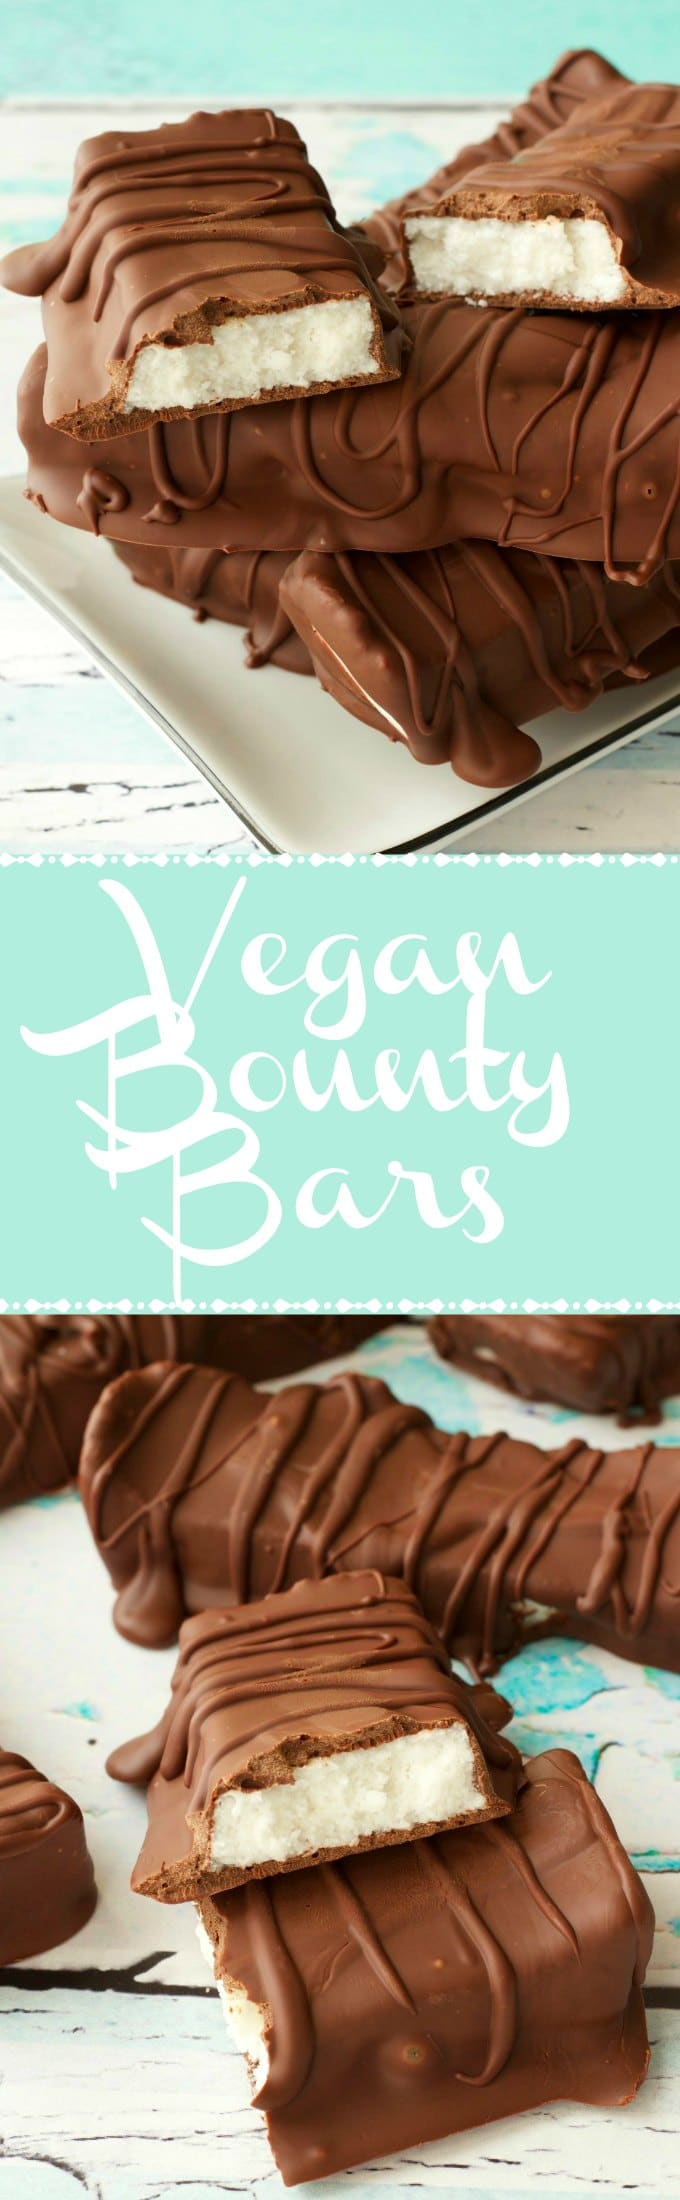 Vegan chocolate coconut bars, also known as bounty bars! Soft and creamy coconut centers smothered in vegan chocolate for a deliciously simple dessert. Vegan | Vegan Chocolate | Vegan Coconut Bars | Vegan Bounty Bars | Vegan Dessert | Dairy Free | Gluten Free | Gluten Free Vegan | lovingitvegan.com